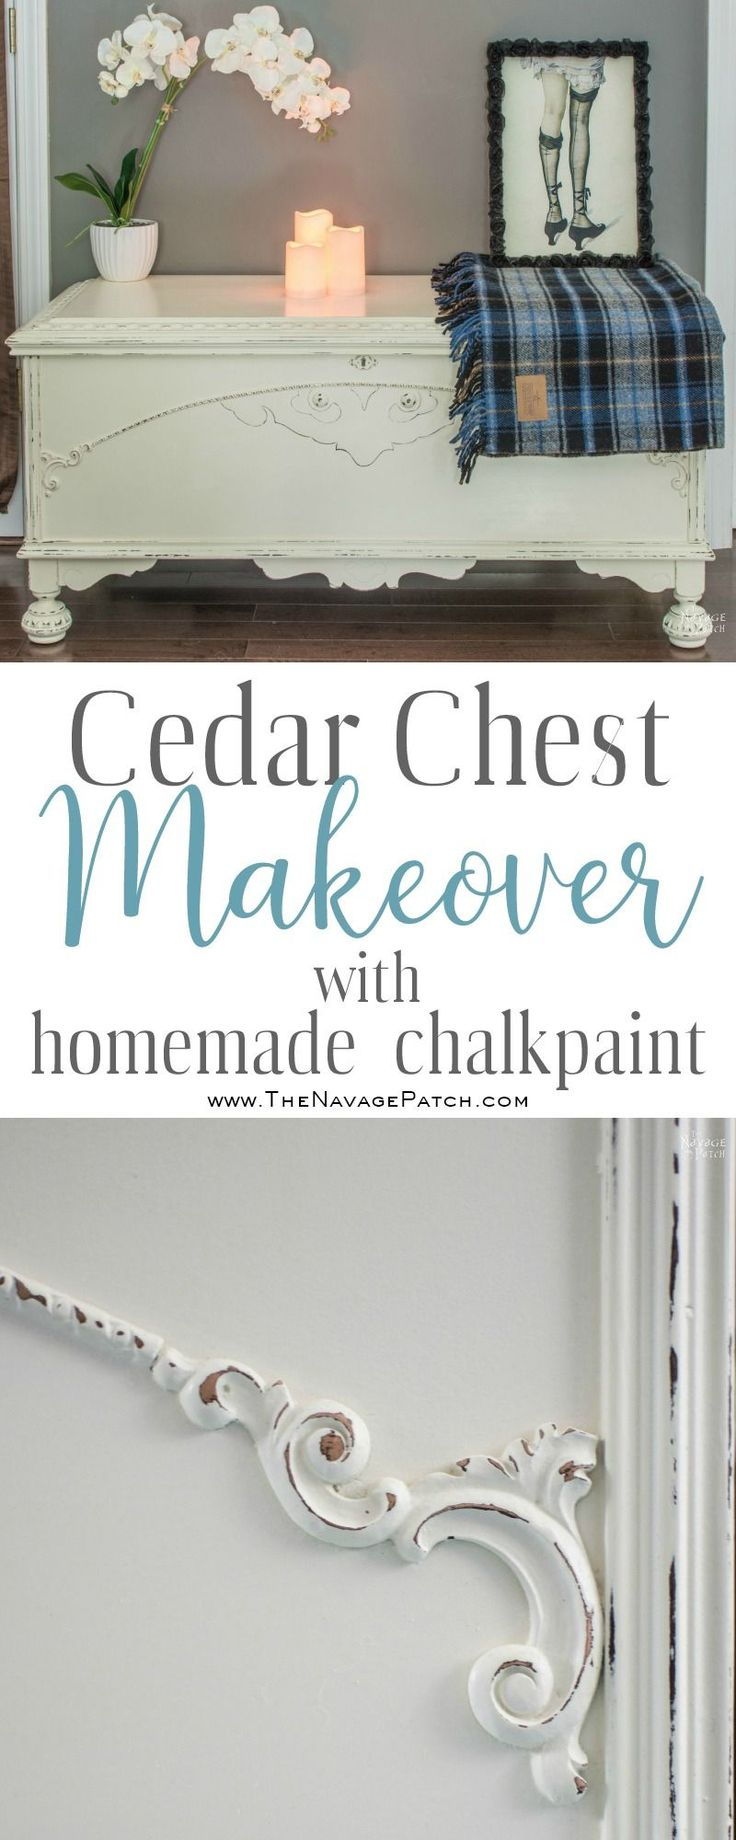 Cedar Chest Makeover | How to cover wood stains when painting with chalk paint |...